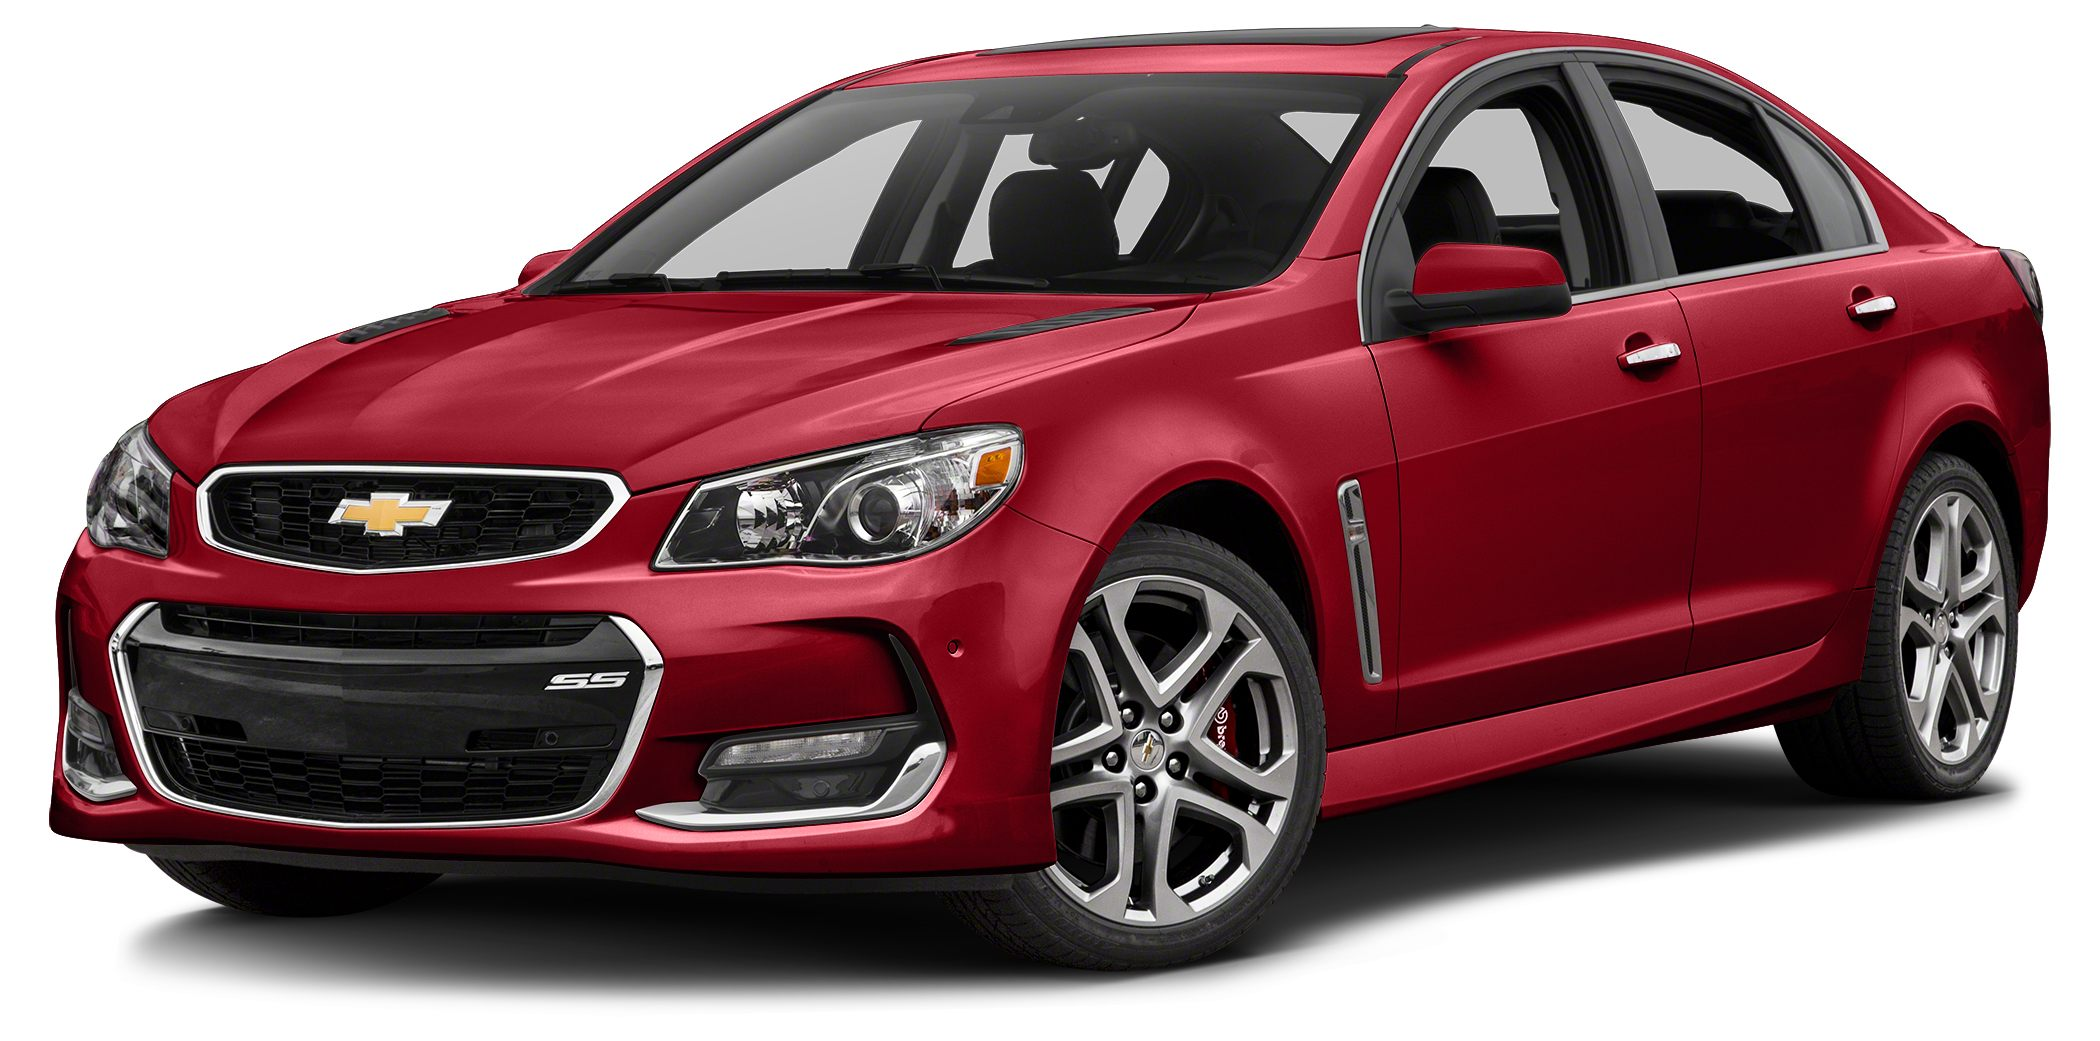 2017 Chevrolet SS Base 2017 Chevrolet SS Miles 3Color Red Stock 17269 VIN 6G3F15RW8HL301382